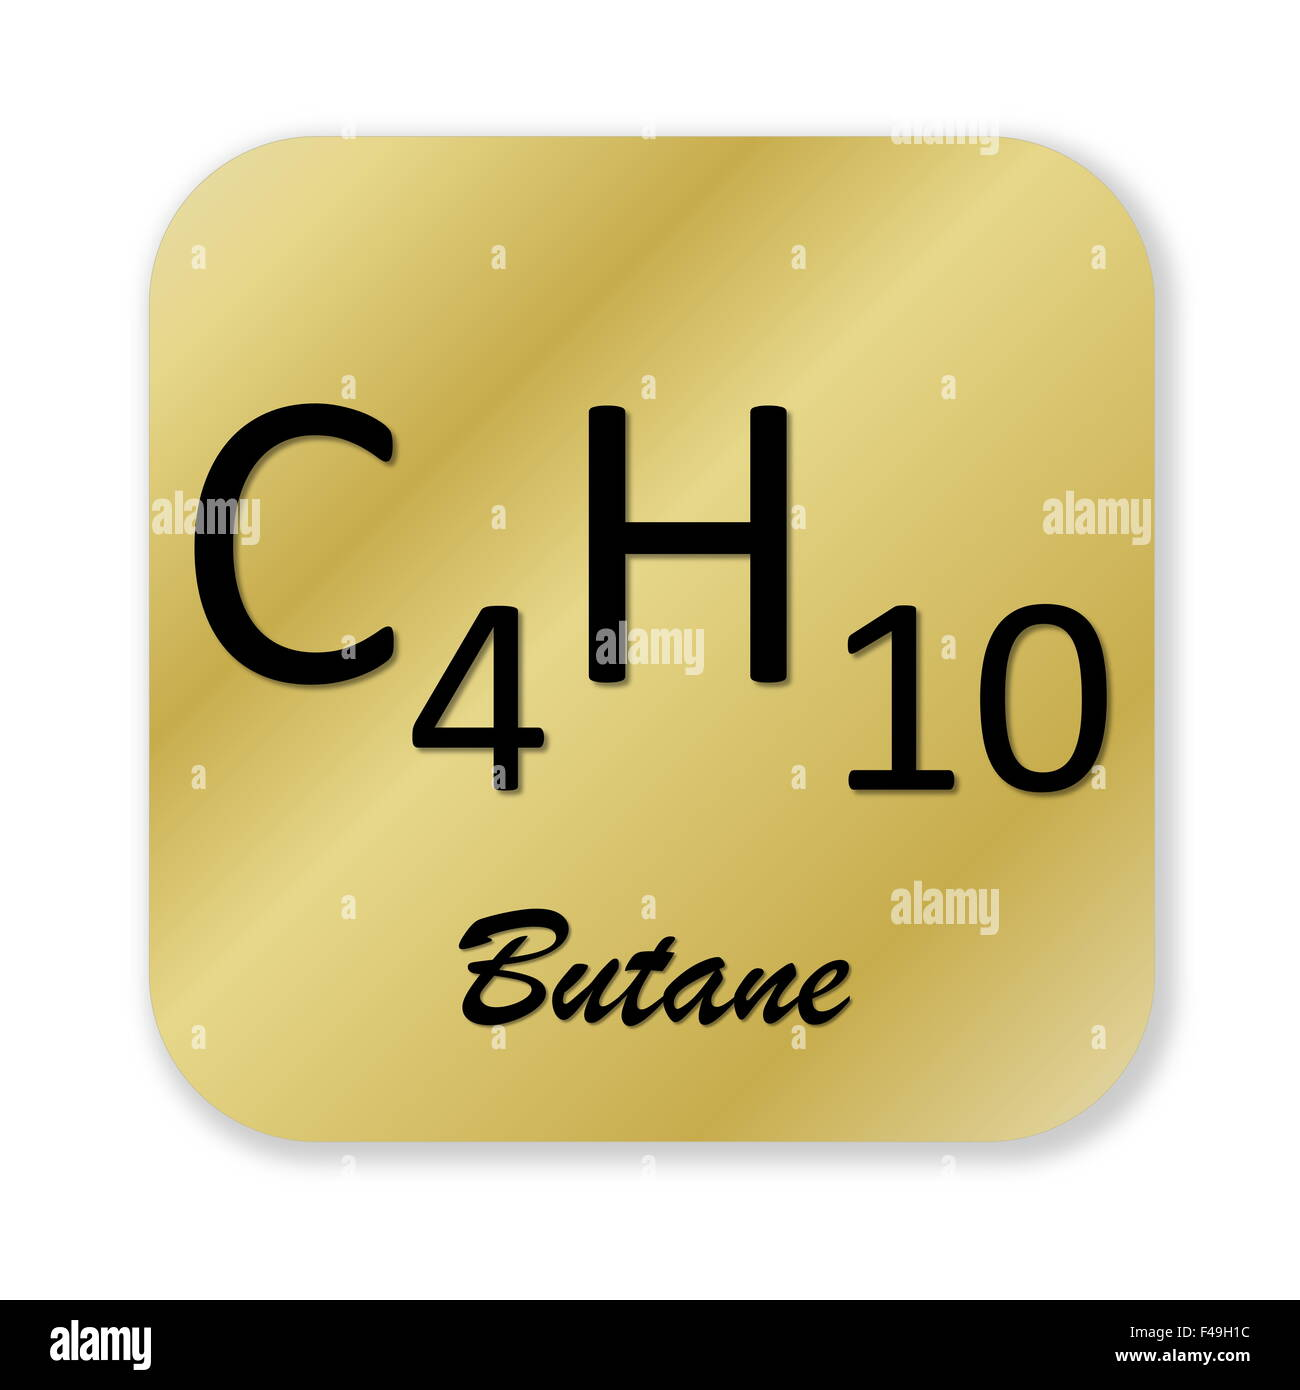 Golden chemical formula of butane symbol isolated in white background - Stock Image